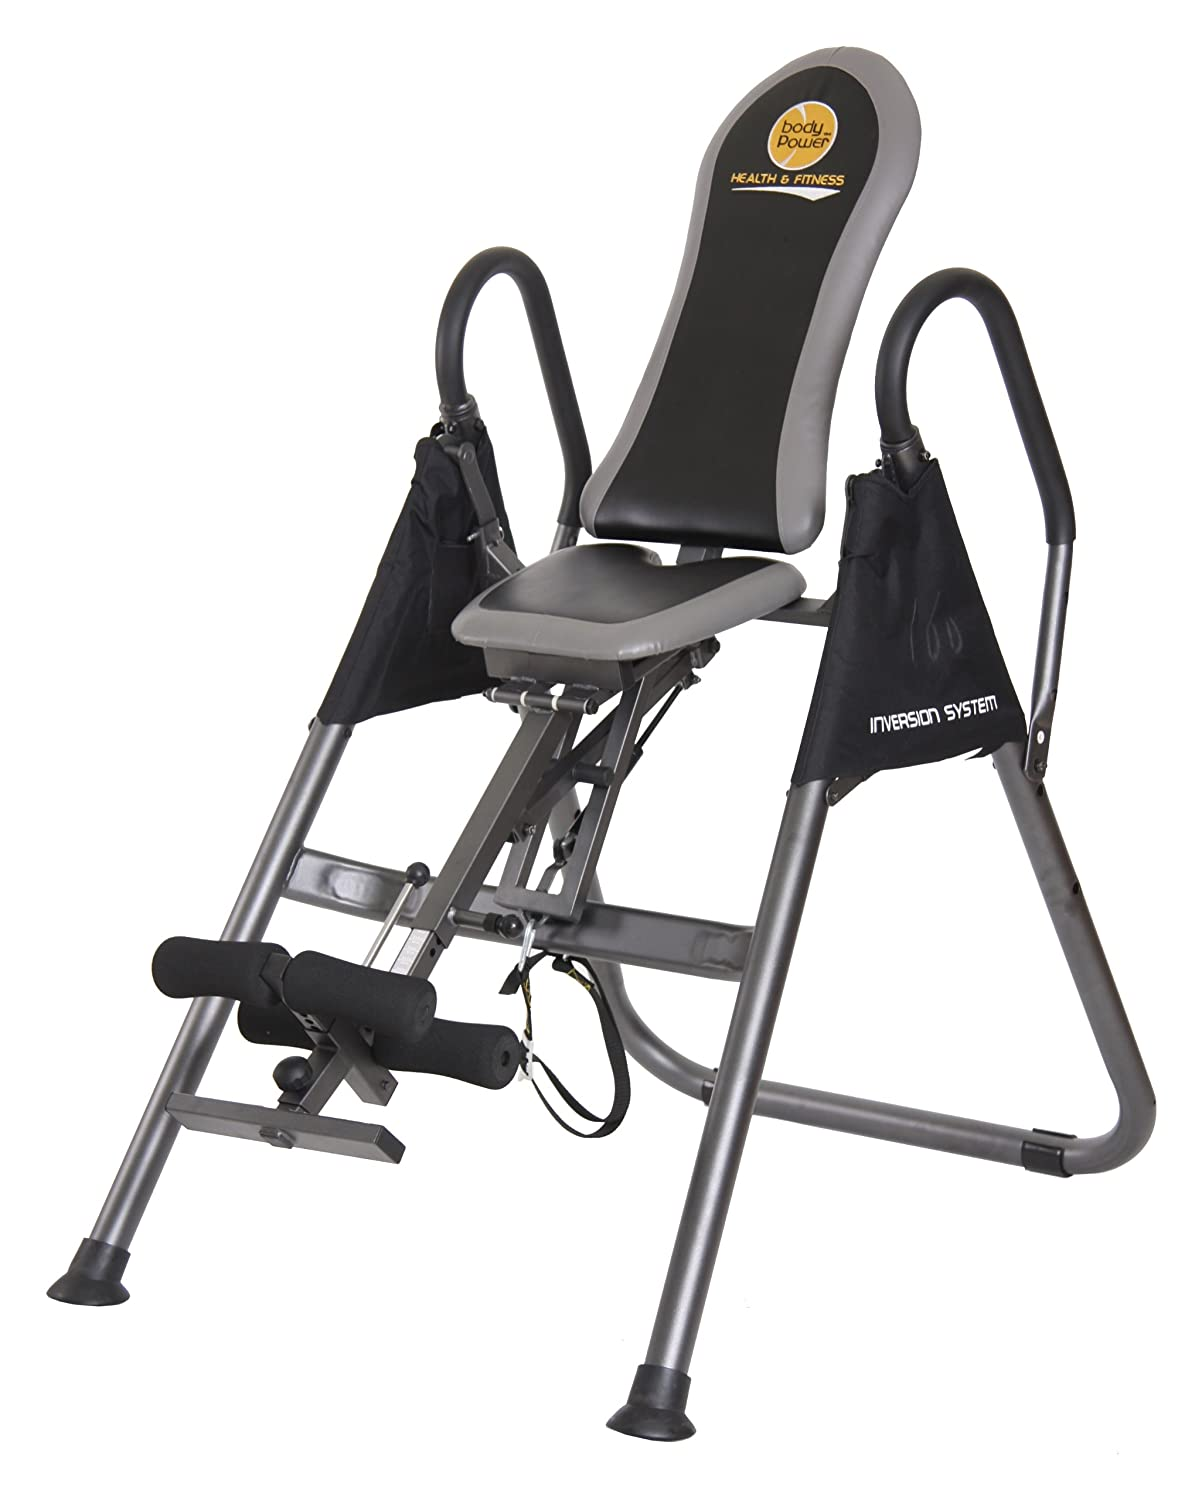 Inversion Chairs Body Power It9910 Seated Deluxe Inversion System Review